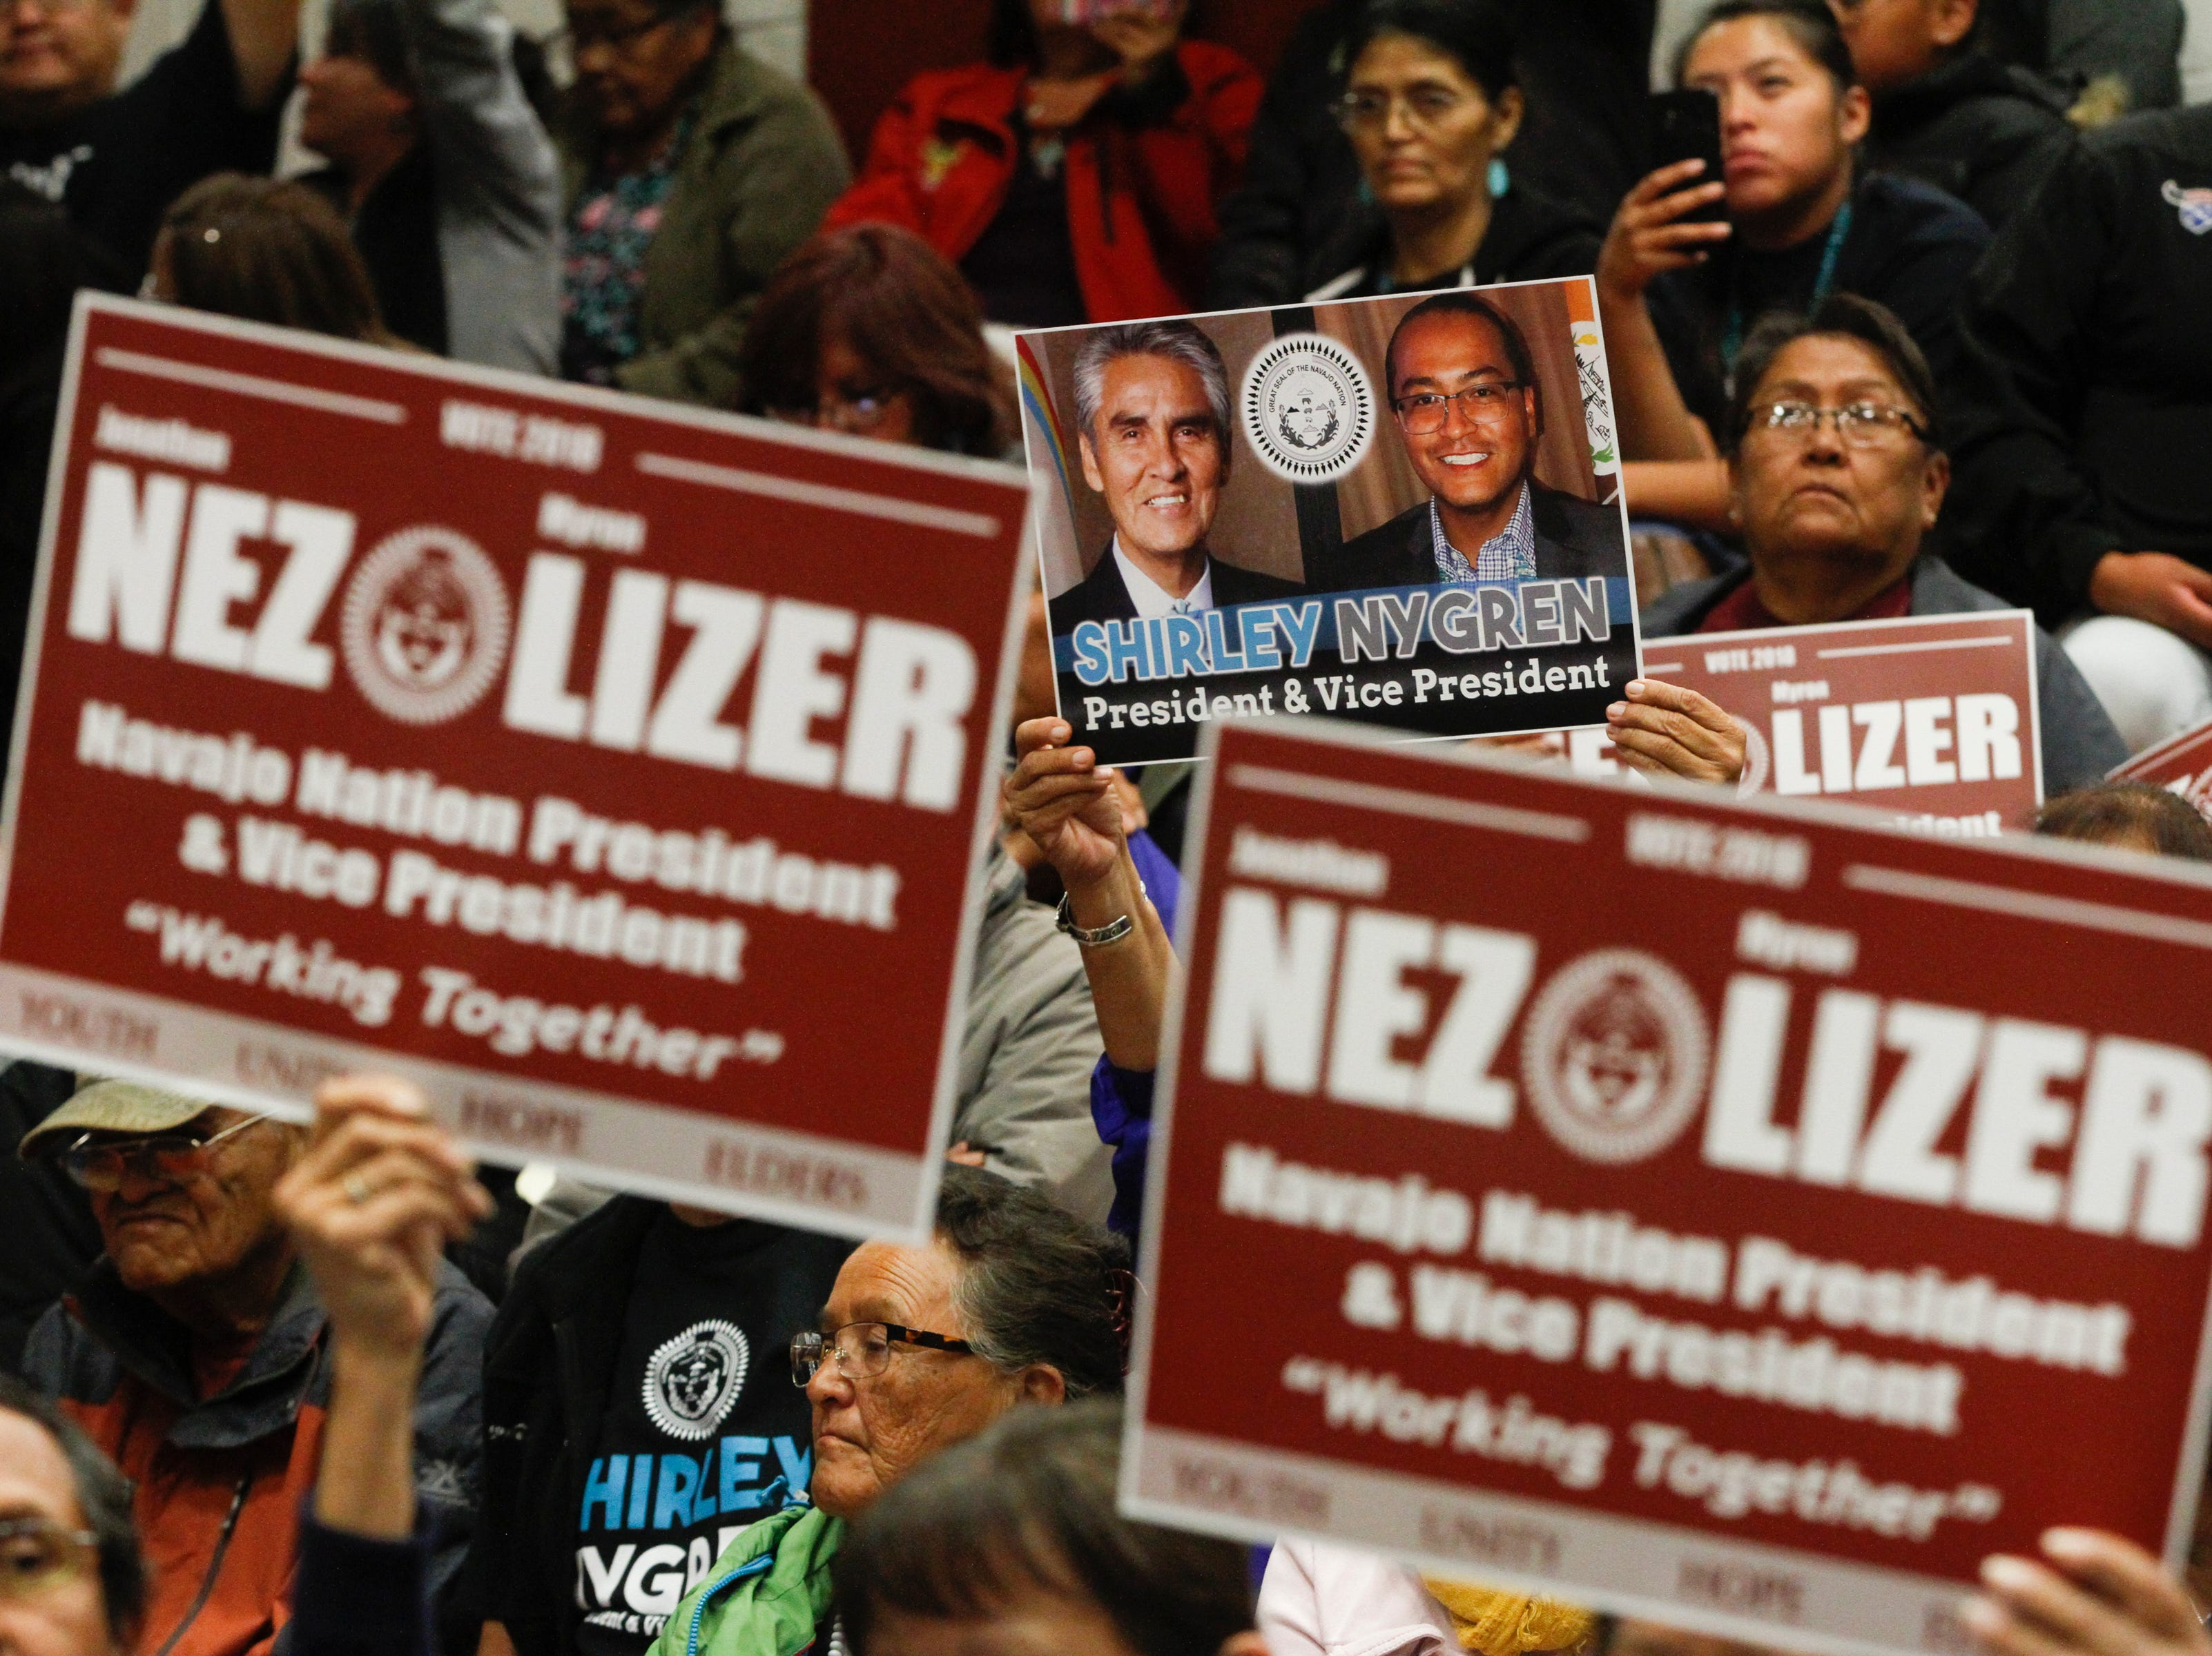 Supporters cheer for their candidates, Tuesday, Oct. 16, 2018 during a presidential candidate debate at Navajo Technical University's Wellness Center in Crownpoint.